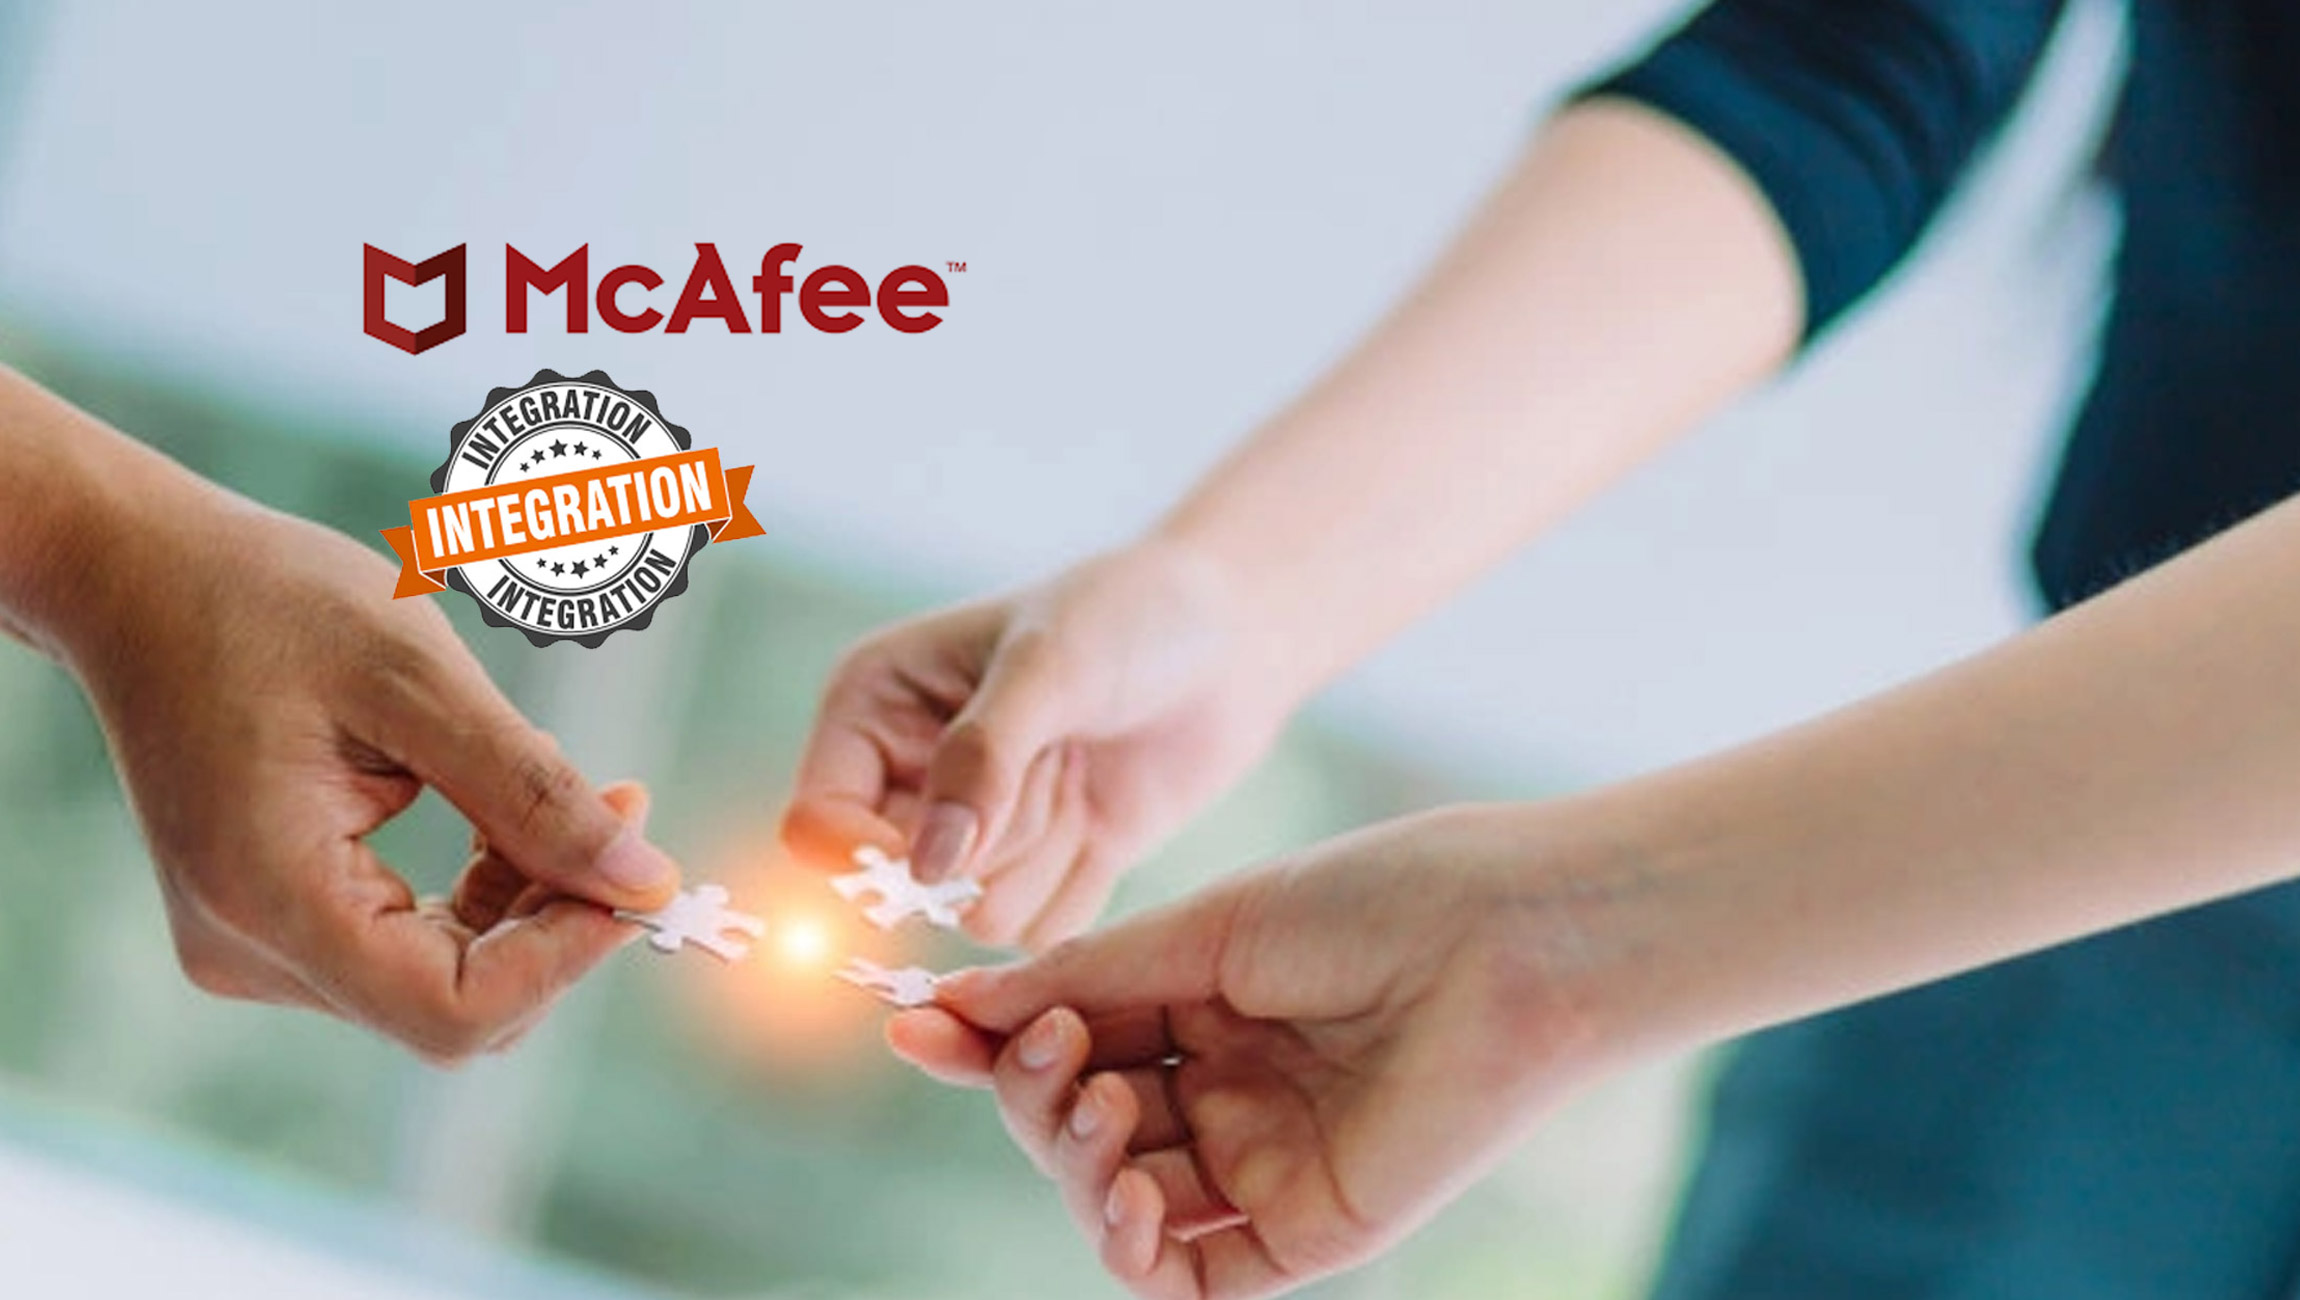 Combination of McAfee Enterprise and FireEye Complete